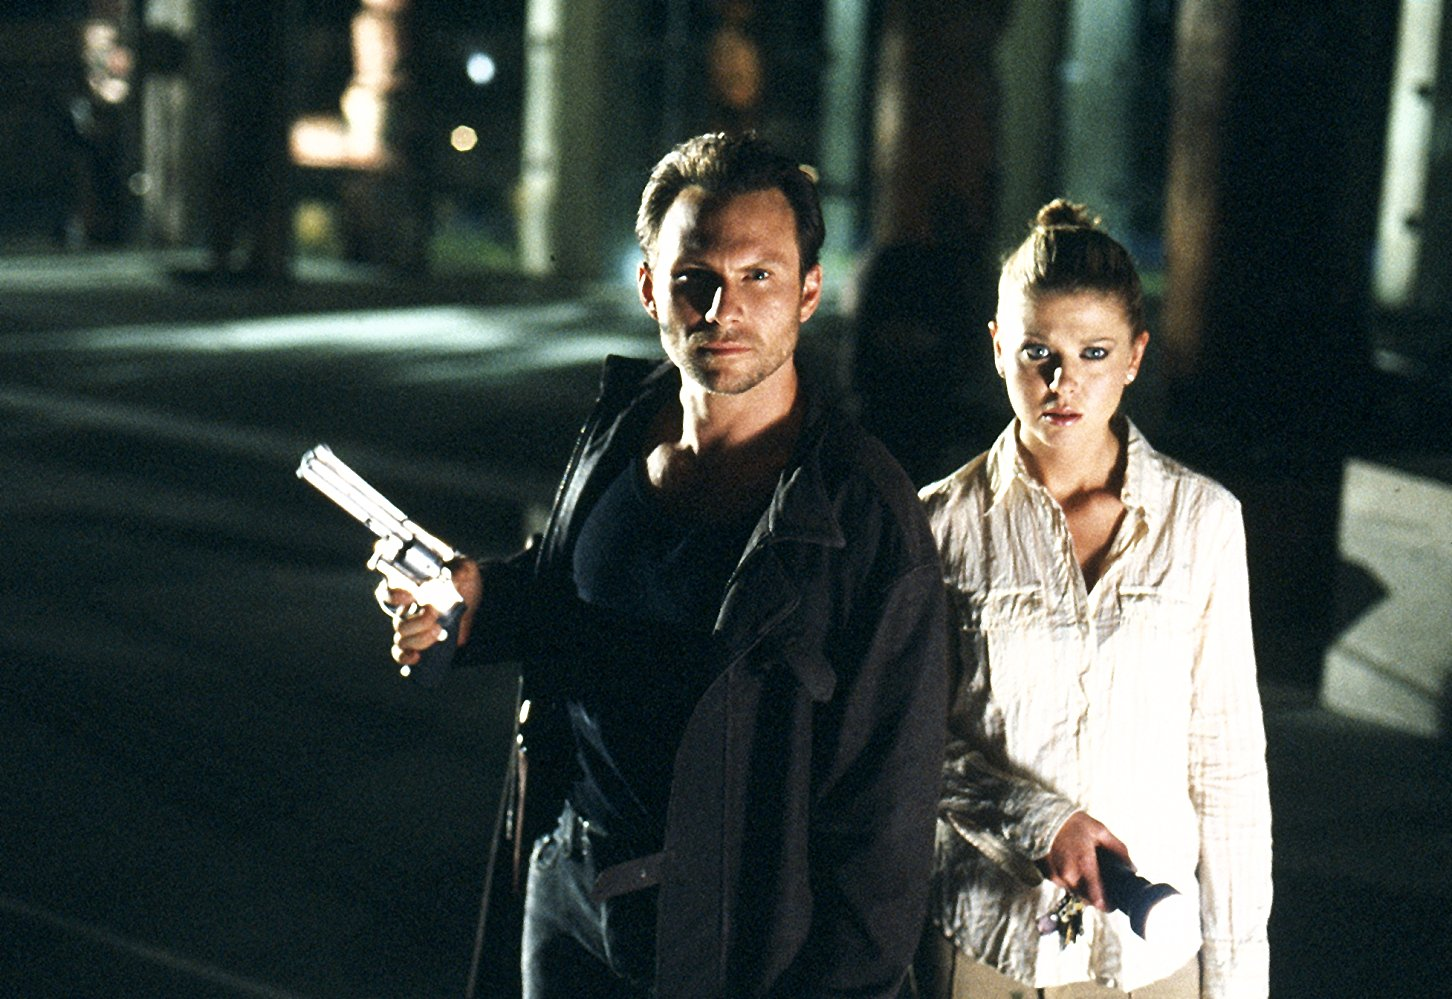 Christian Slater as Edward Carnby and Tara Reid as Aline Cedrac in Alone in the Dark (2005)